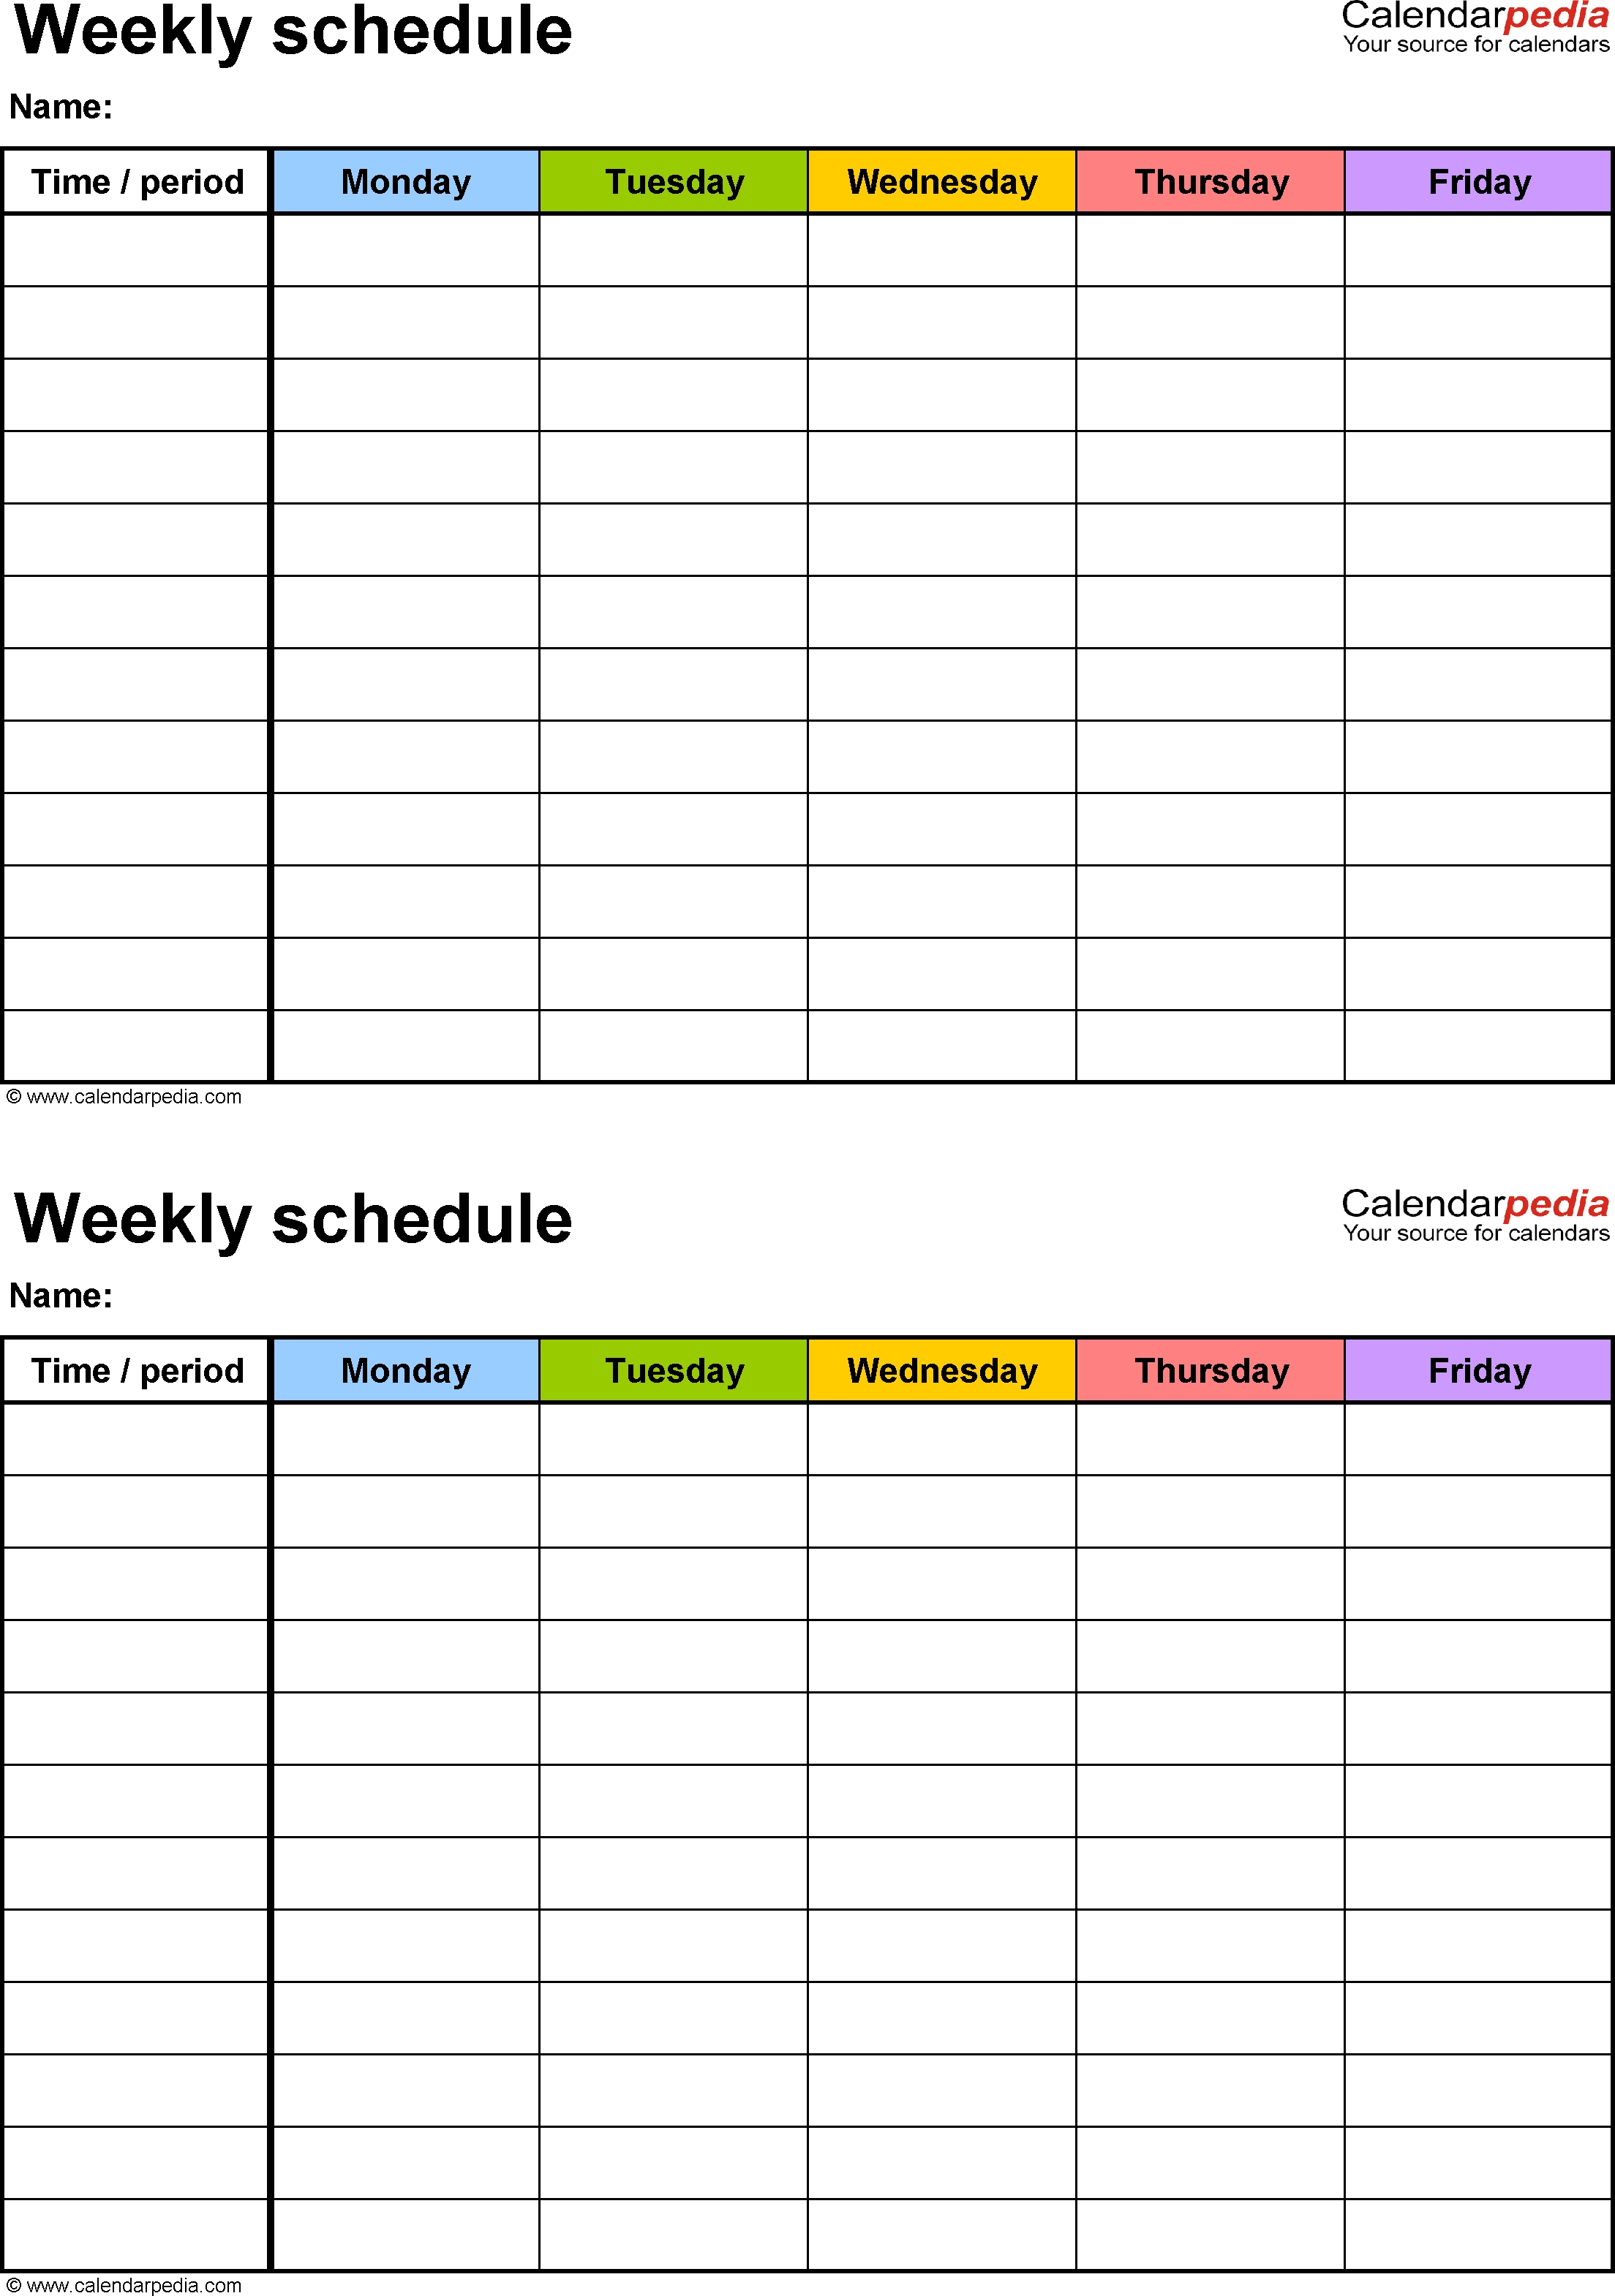 Free Weekly Schedule Templates For Word - 18 Templates-5 Day Monthly Calendar Printable